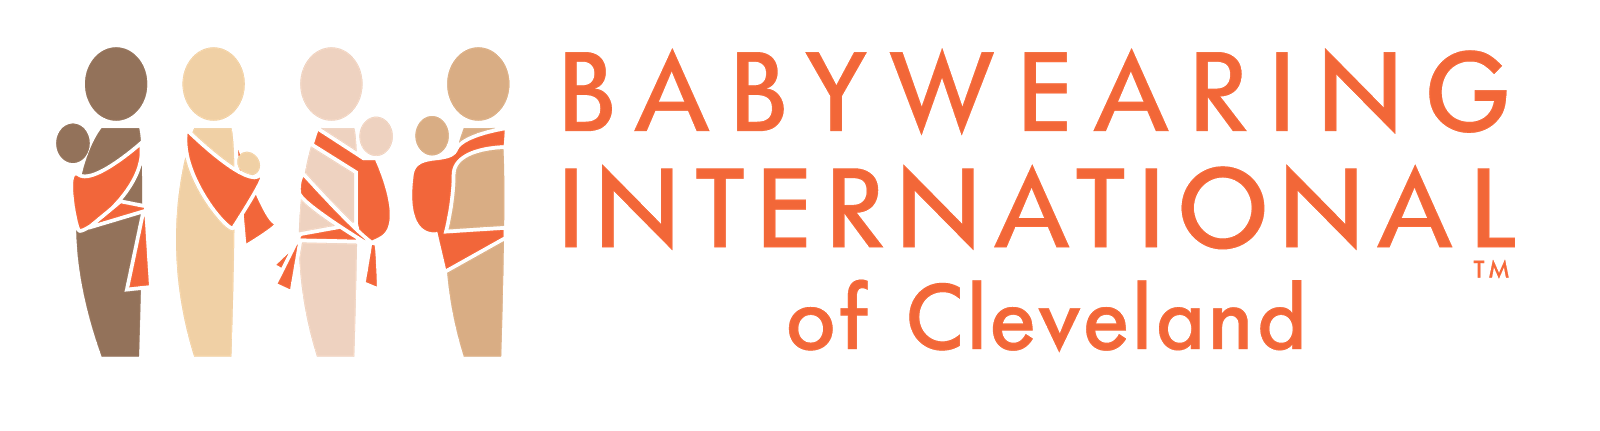 Babywearing International of Cleveland